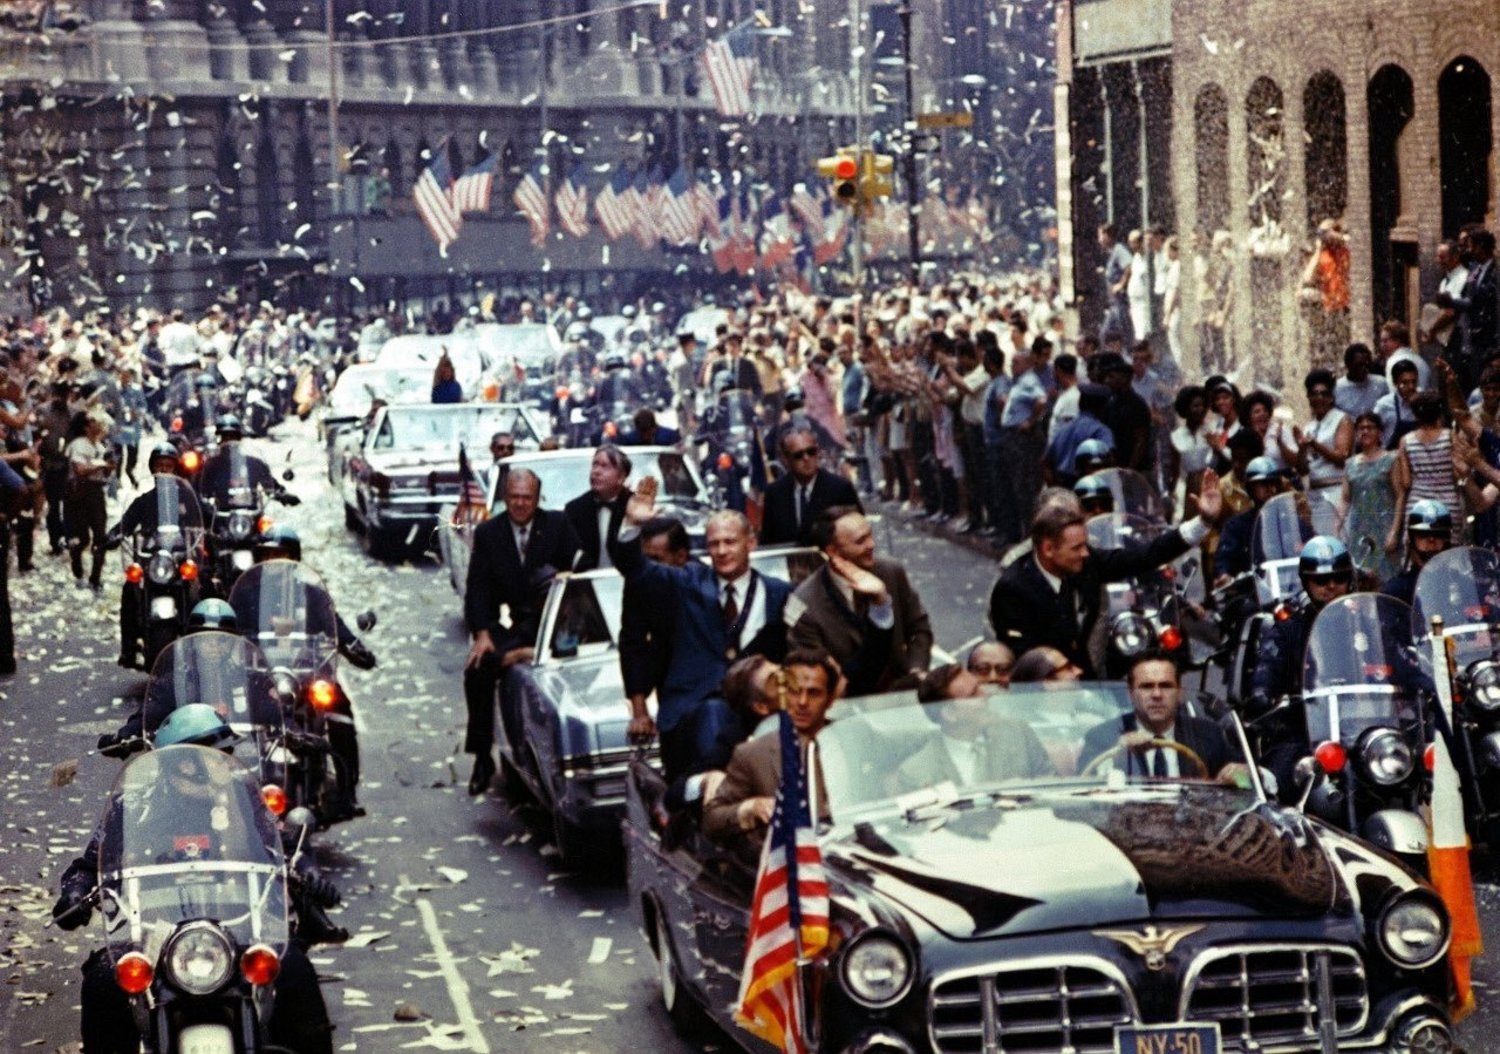 47 years ago today Neil, Mike and I took a leisurely ride through NYC to celebrate with a few friends. #Apollo11 https://t.co/9JtT9WPt8g